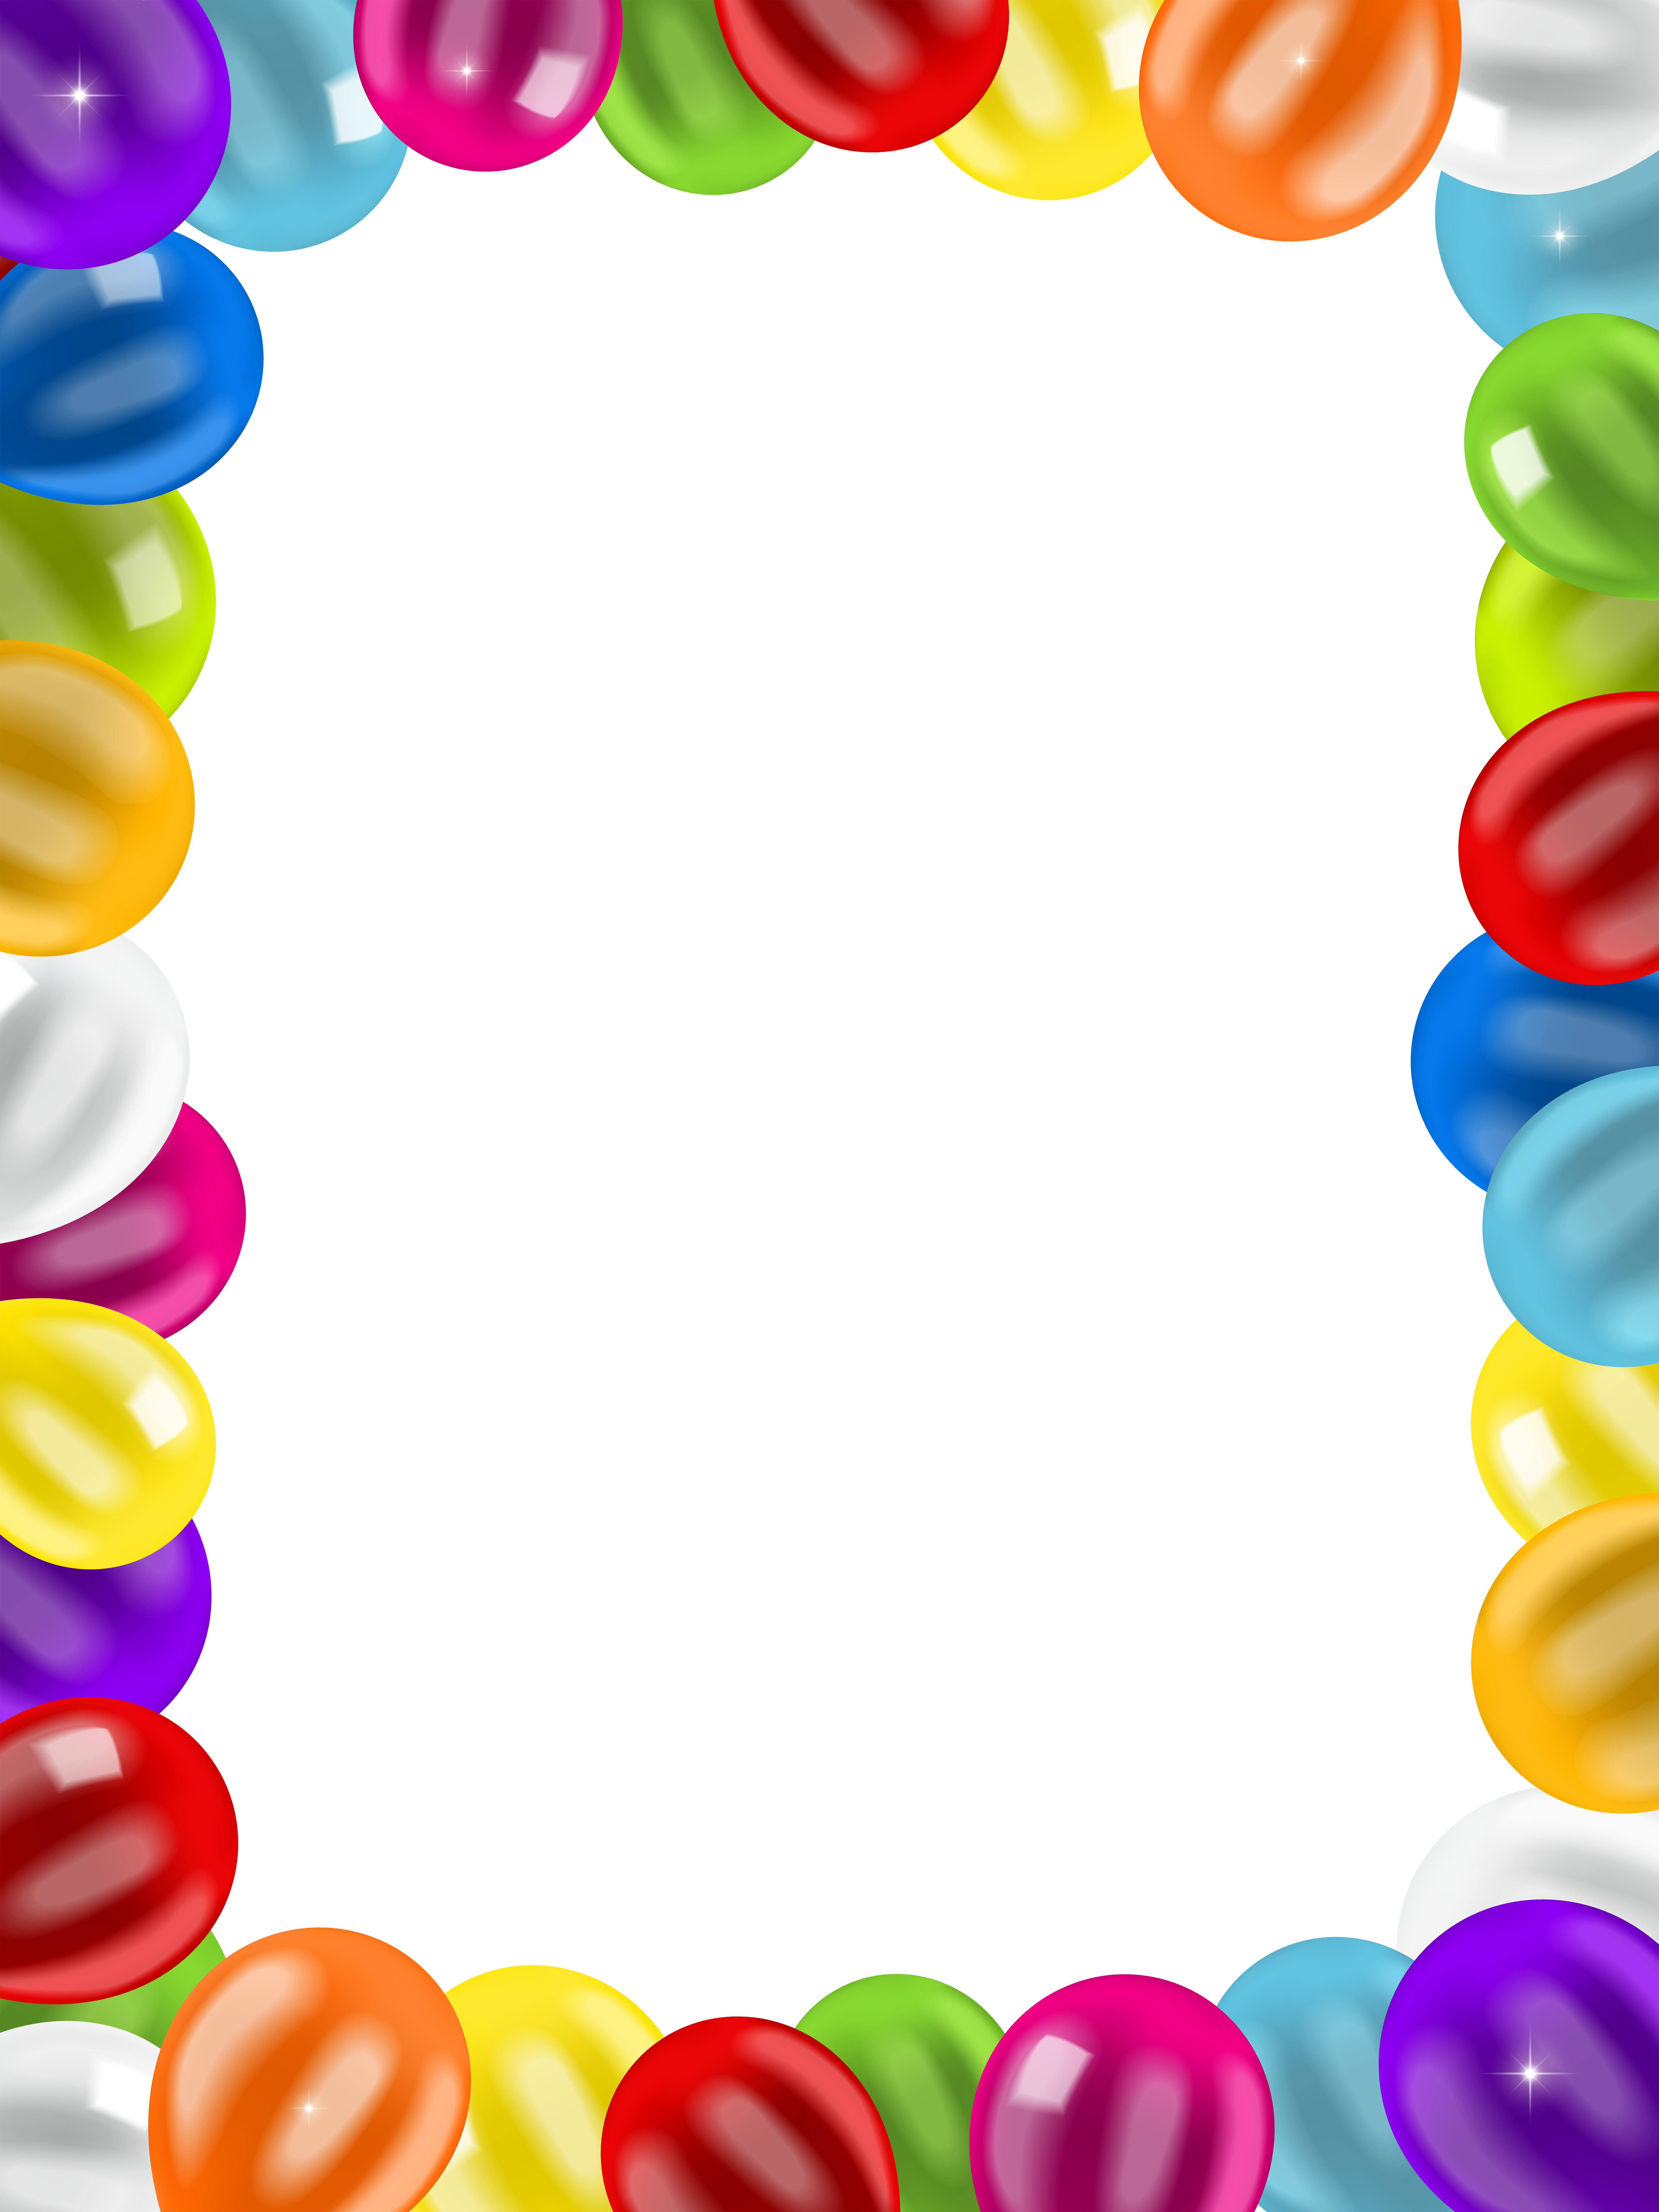 Balloons Border Frame Png Clip Art Image Gallery Yopriceville High Quality Images And Transparent Png Fre Birthday Balloons Clipart Free Clip Art Balloons